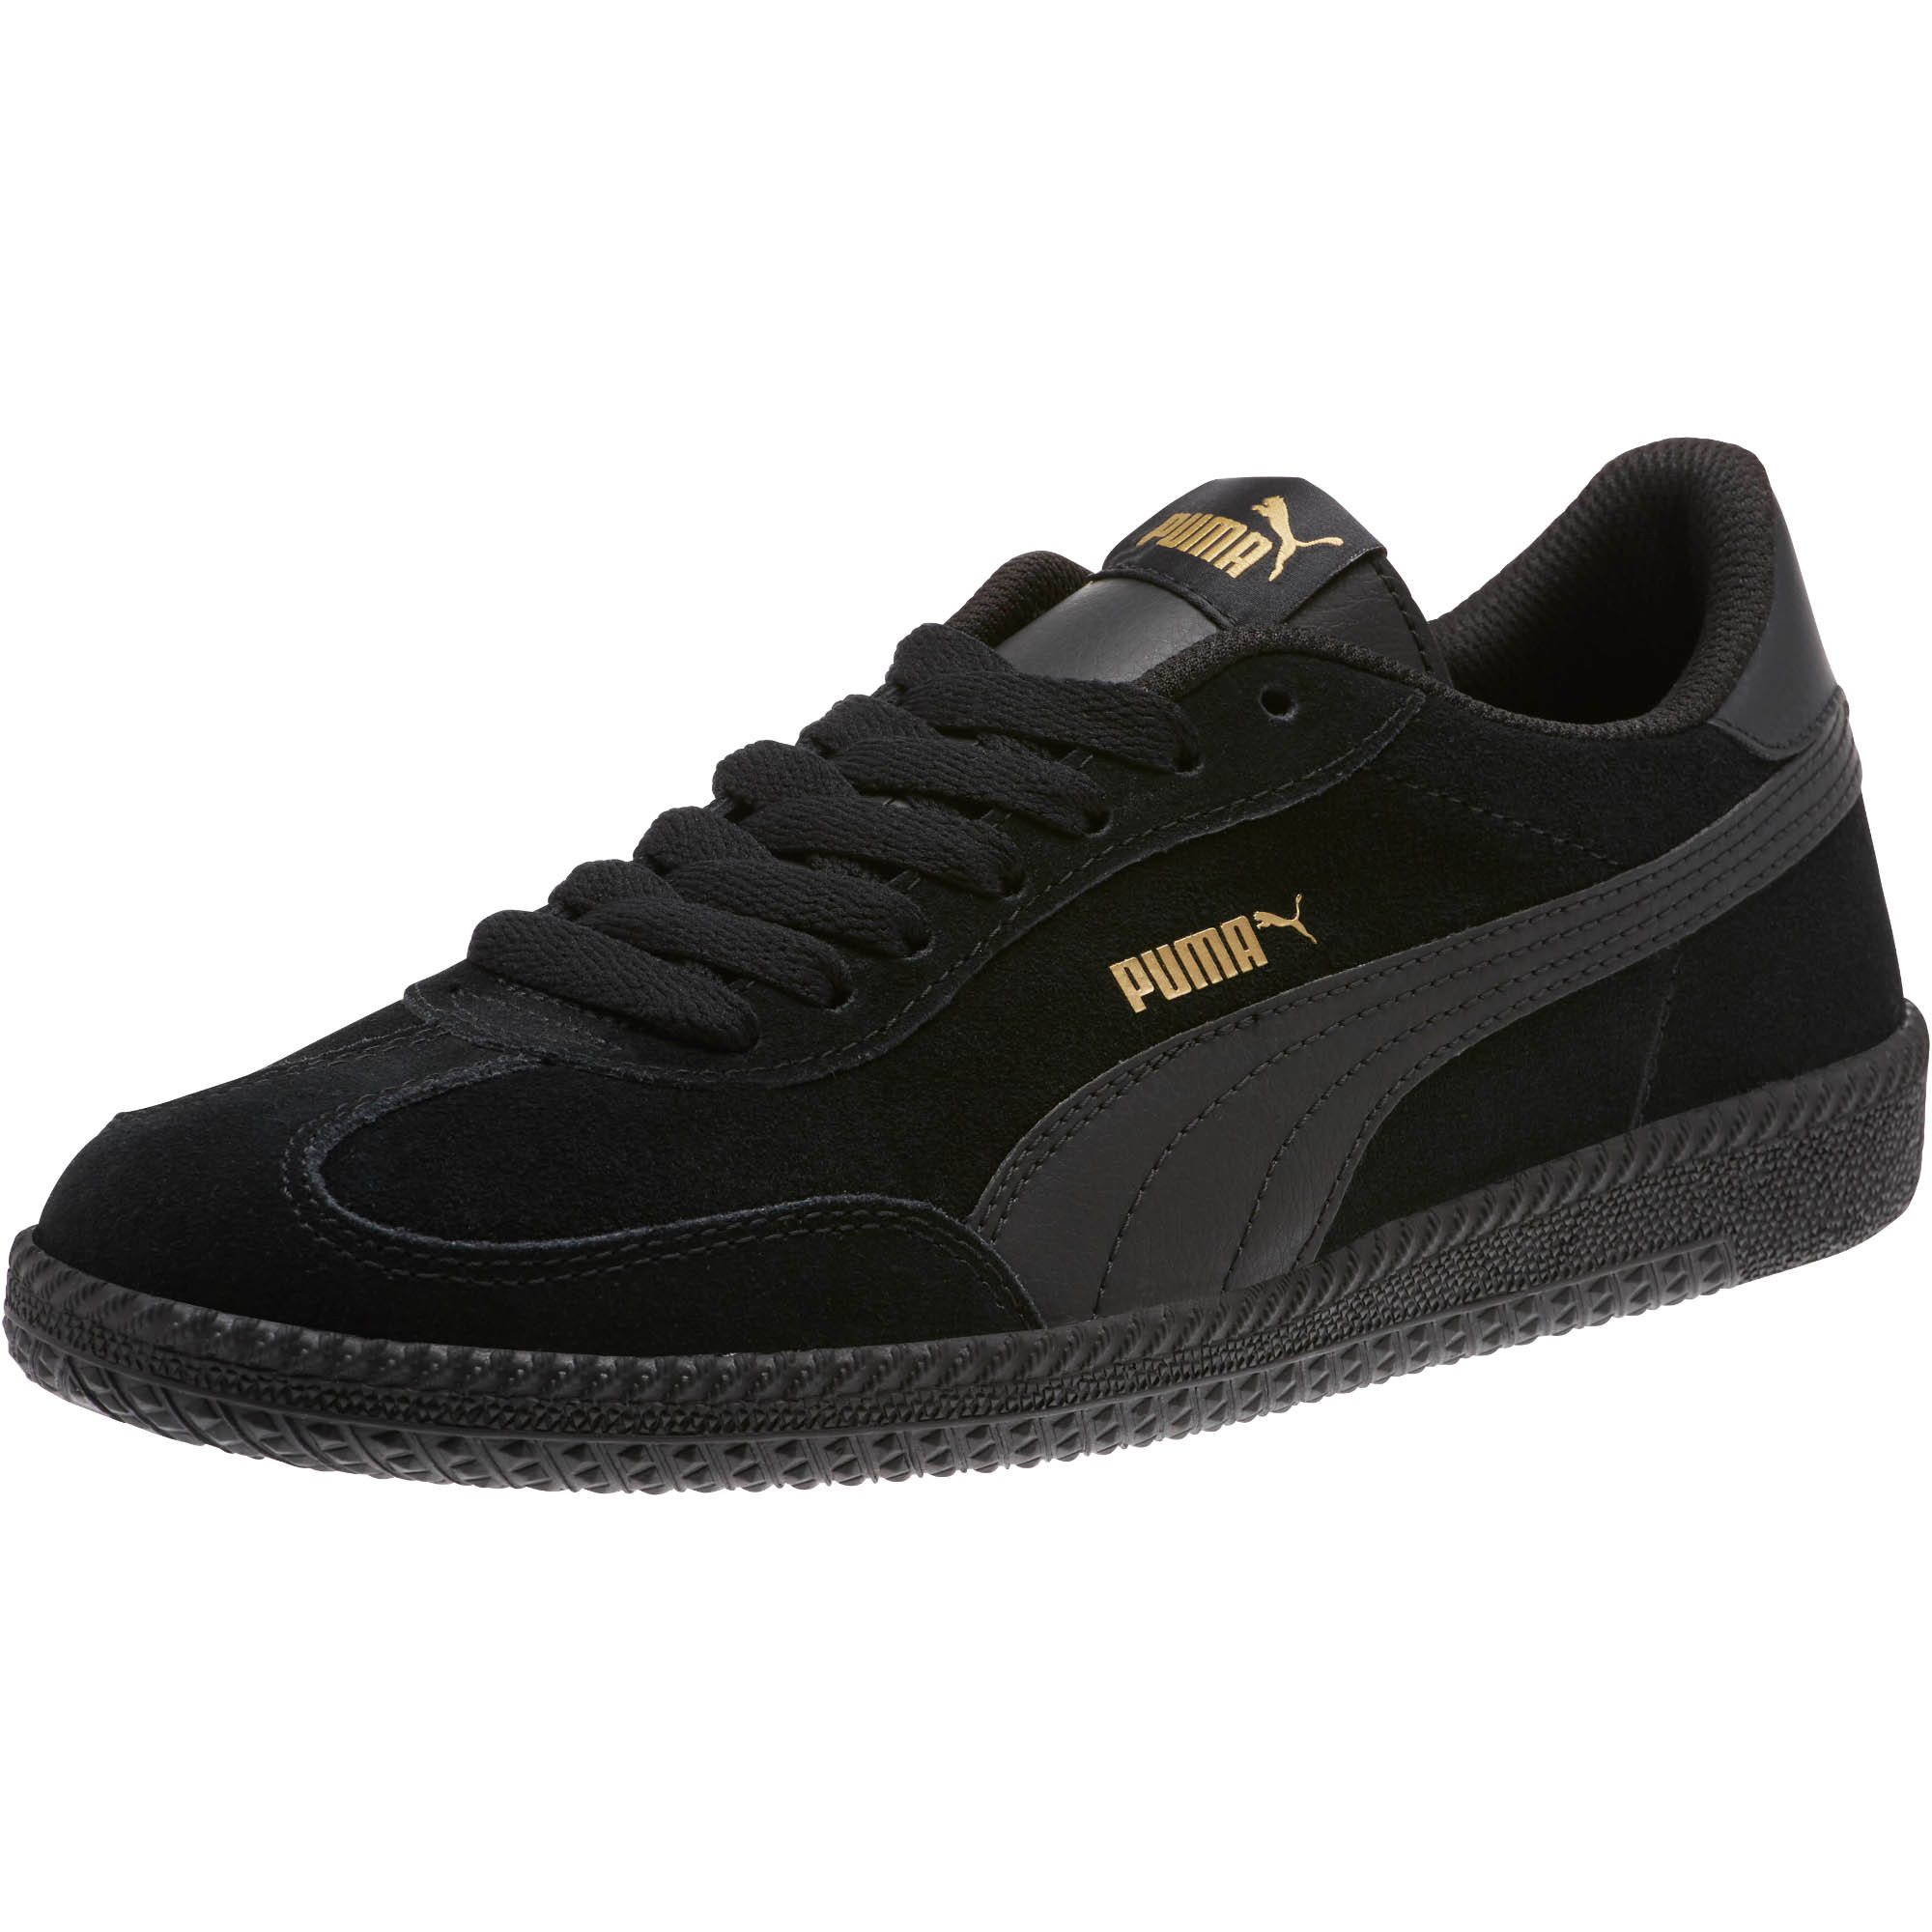 PUMA-Astro-Cup-Suede-Sneakers-Men-Shoe-Basics thumbnail 6